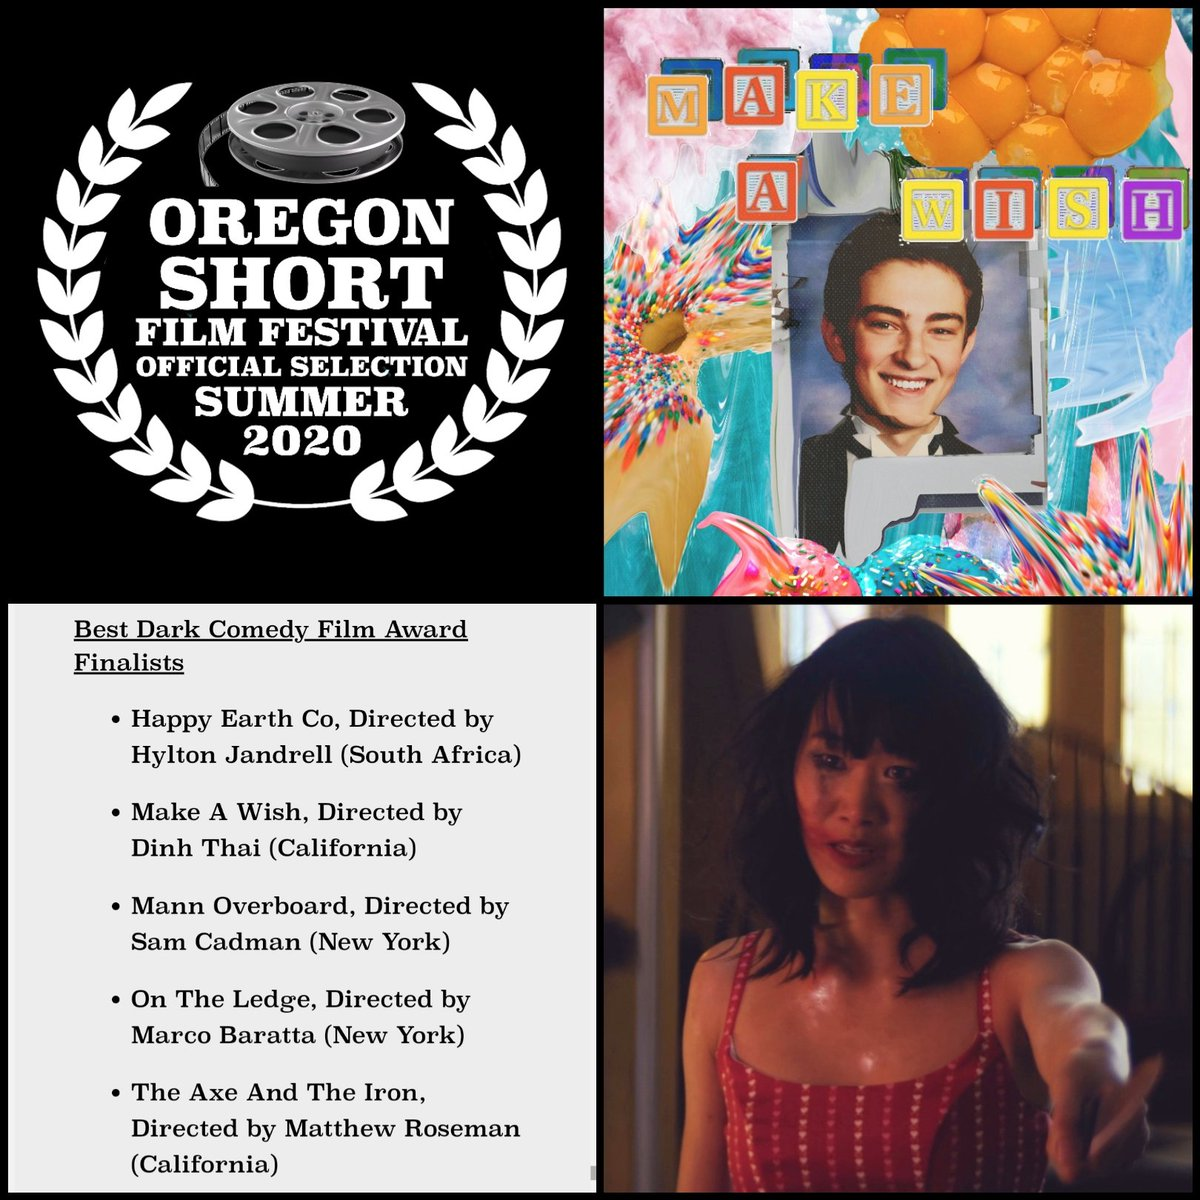 We have some exciting news to share for you today and we'll start it off with our Best Dark Comedy nomination from the Oregon Short Film Festival!!   #oregonshortfilmfestival #filmfestival #nomination #darkcomedy #horrorcomedy #shortfilm #oregonpic.twitter.com/ybyMMrVEf4